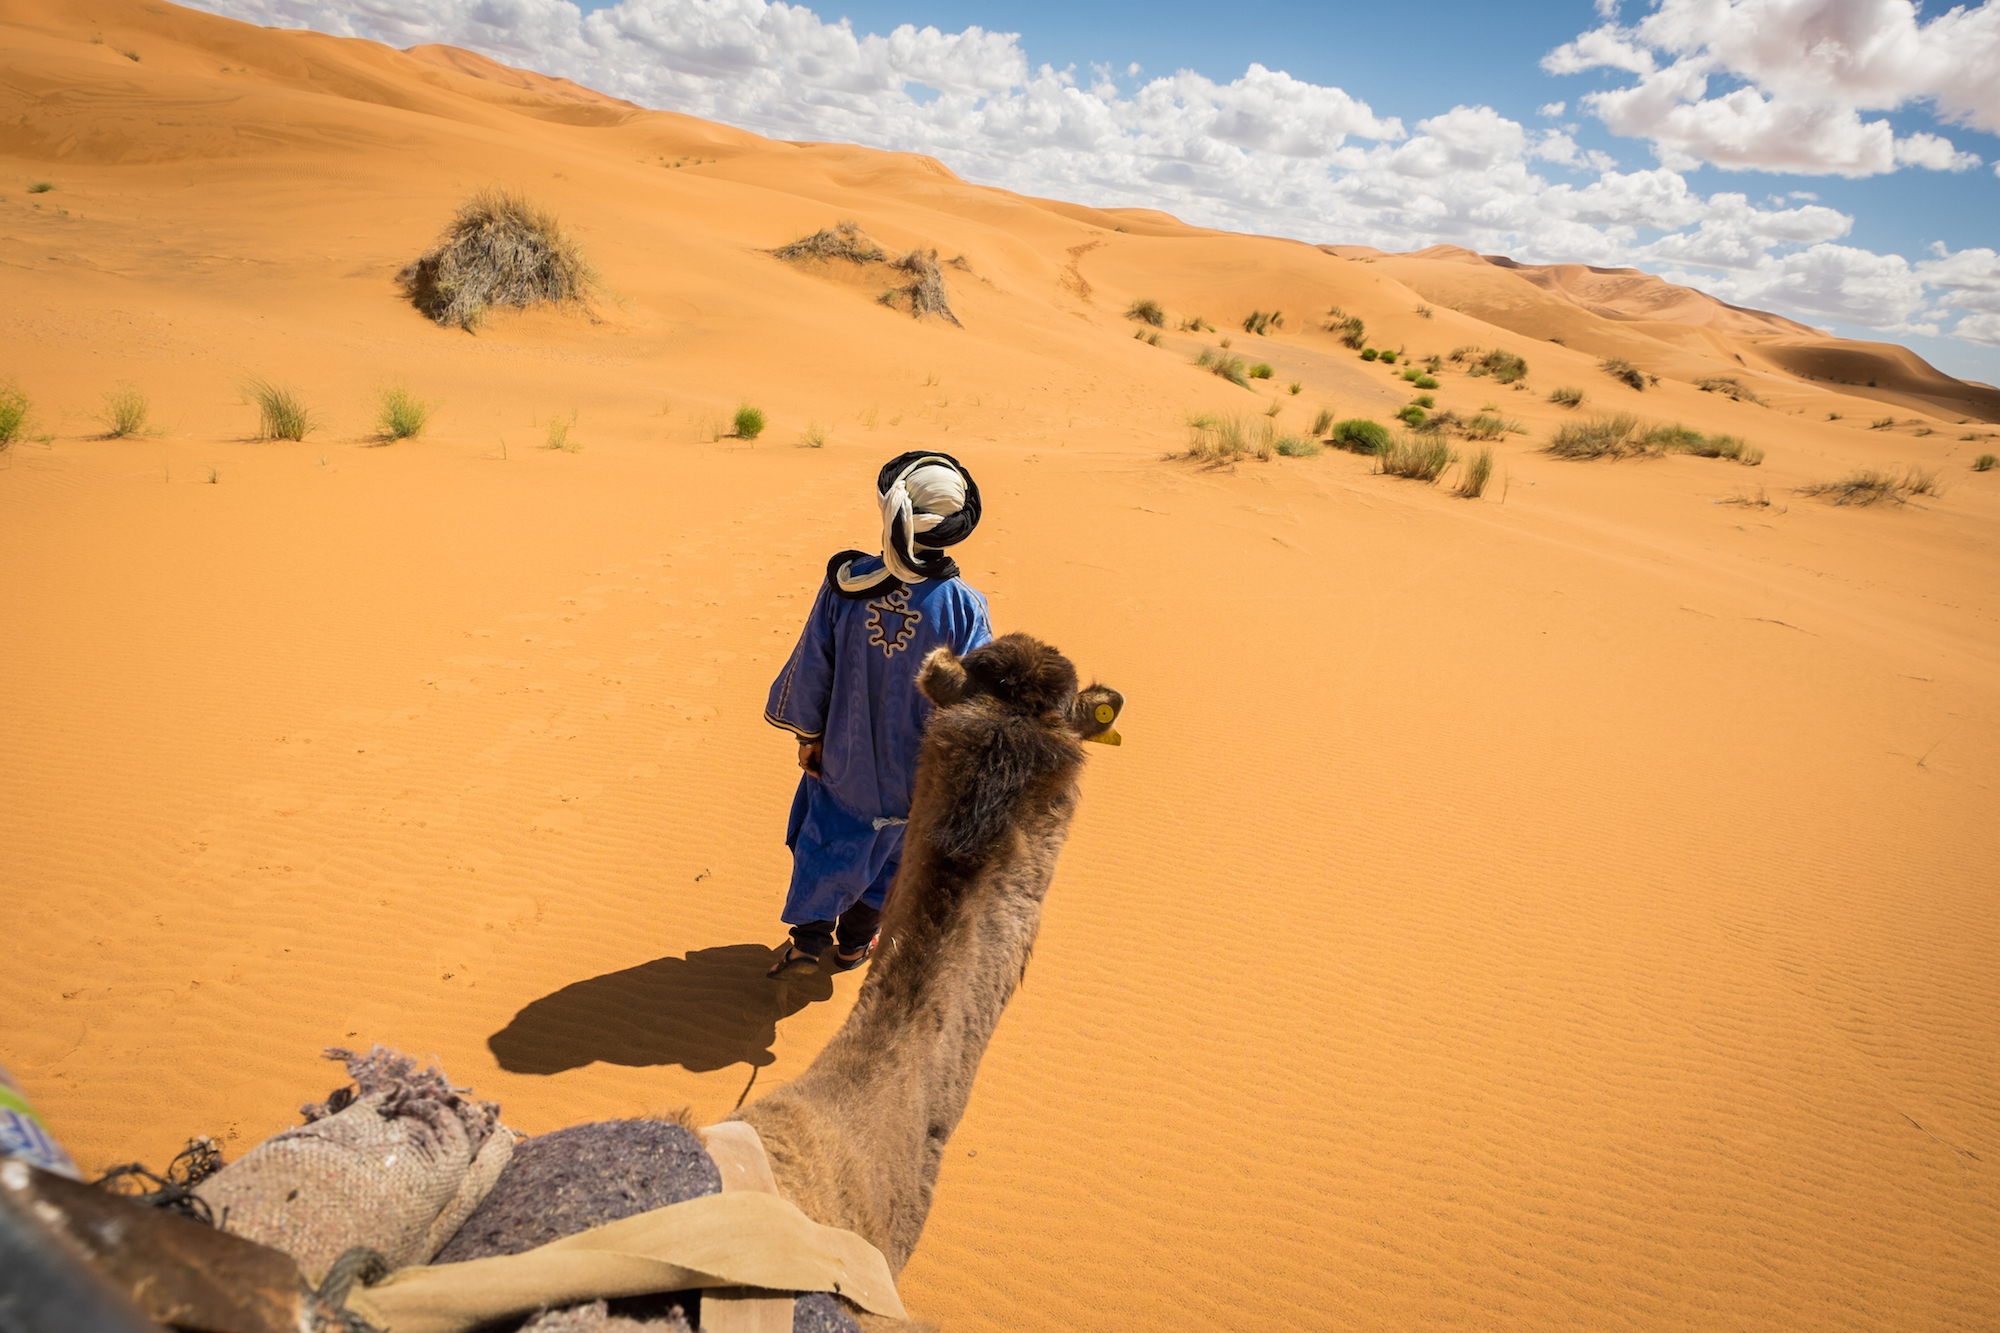 Camels are the main mode of transportation in the Sahara, carrying both supplies and people over long distances.